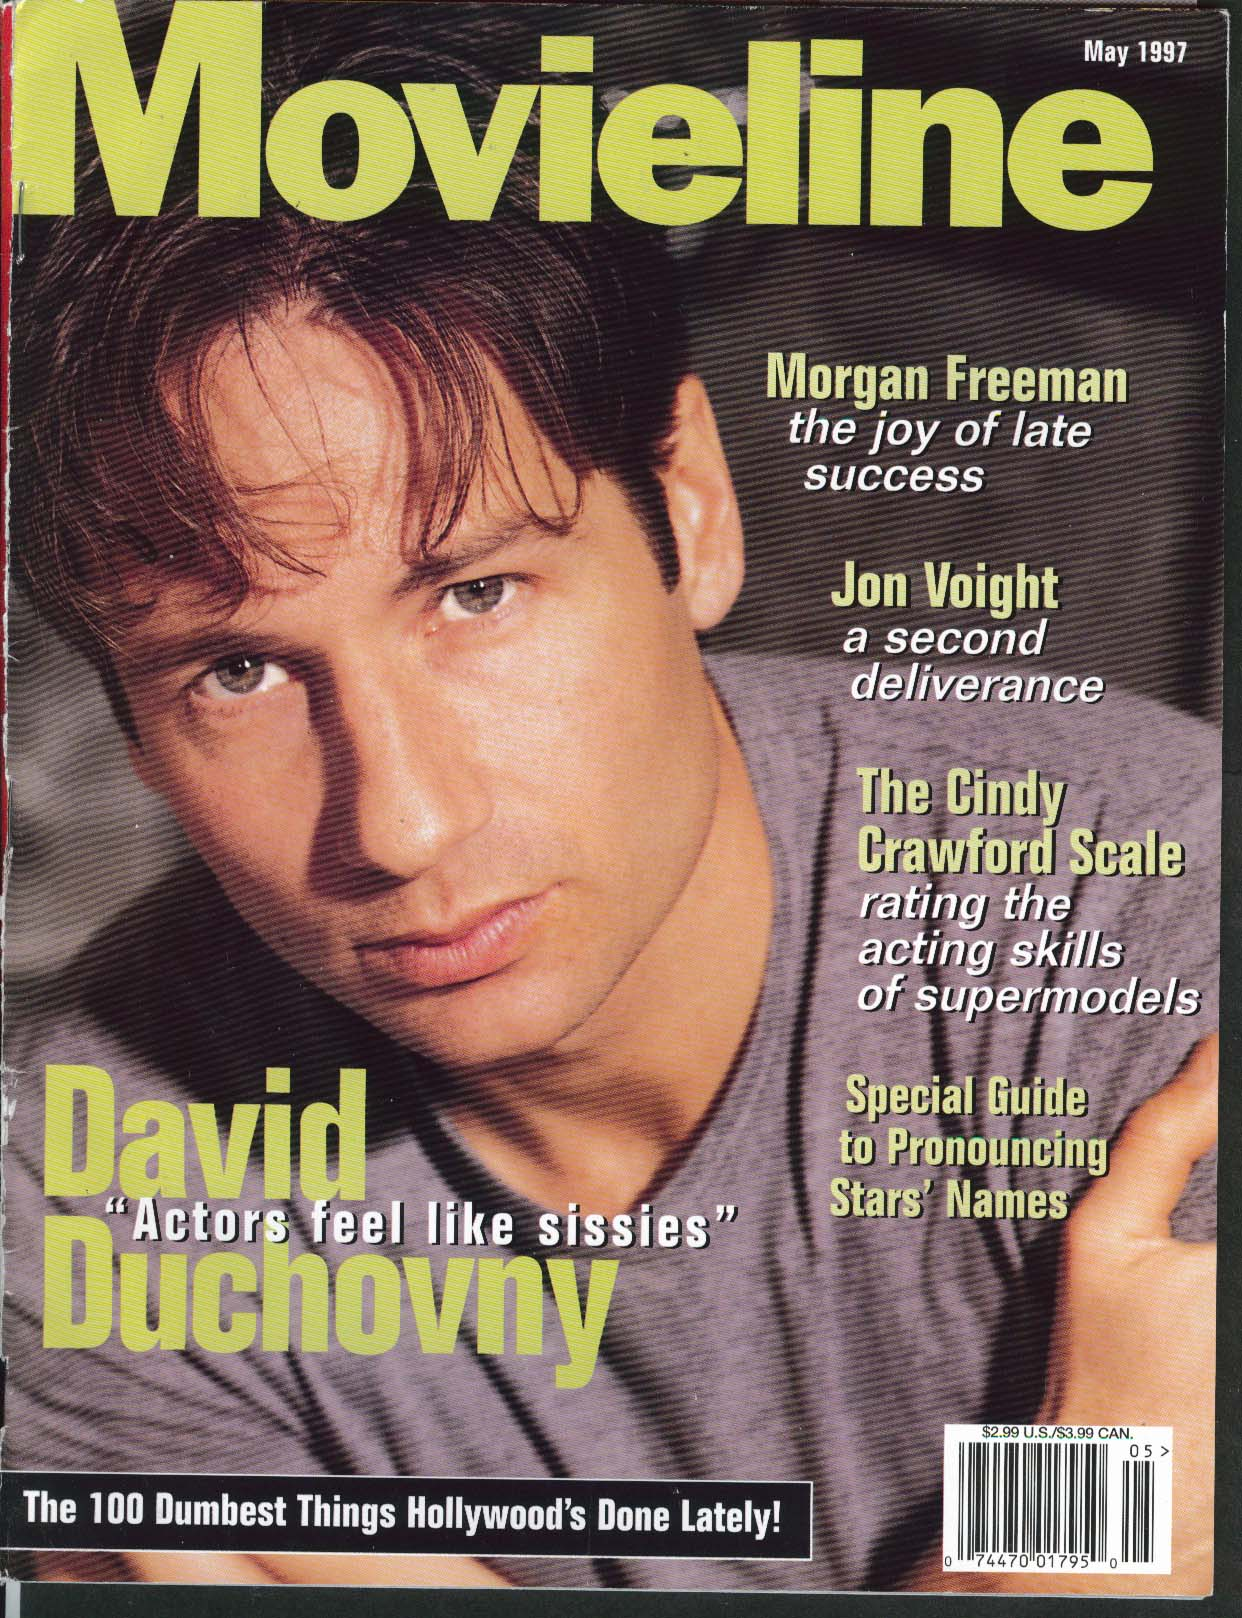 Image for MOVIELINE David Duchovny Morgan Freeman Jon Voight Cindy Crawford ++ 5 1997